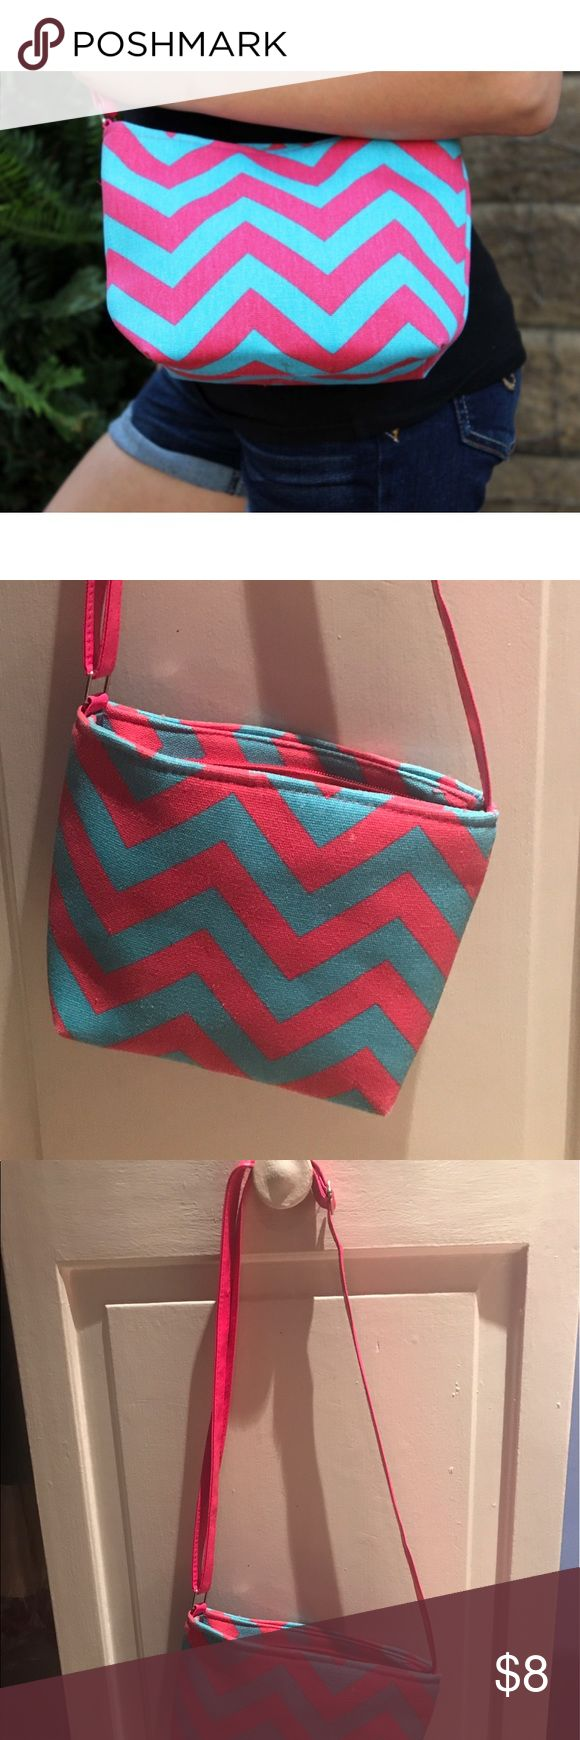 Super Cute and Trendy Chevron Purse Aqua and Hot Pink Super Cute and Trendy Chevron Purse. Like new. Only used once. This Super Cute and Trendy Chevron Purse is perfect for anyone on the go. Great for school, work, or traveling. Fun chevron/zig-zag designer fabric will take you through many seasons. Bags